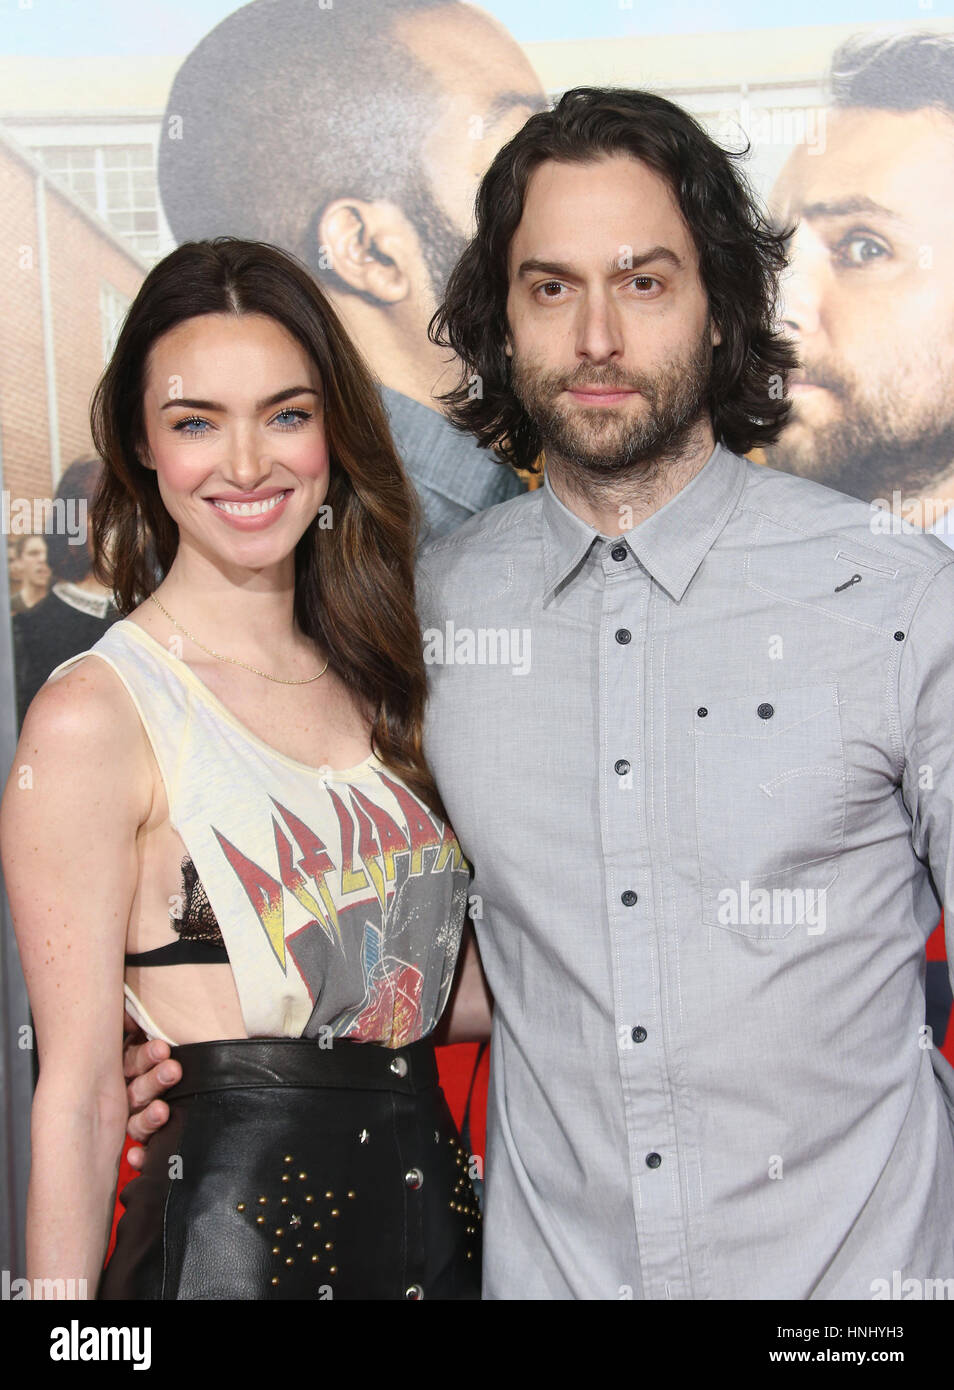 Westwood, CA. 13th Feb, 2017. Cassi Colvin, Chris D'Elia, At Premiere Of Warner Bros. Pictures' 'Fist - Stock Image